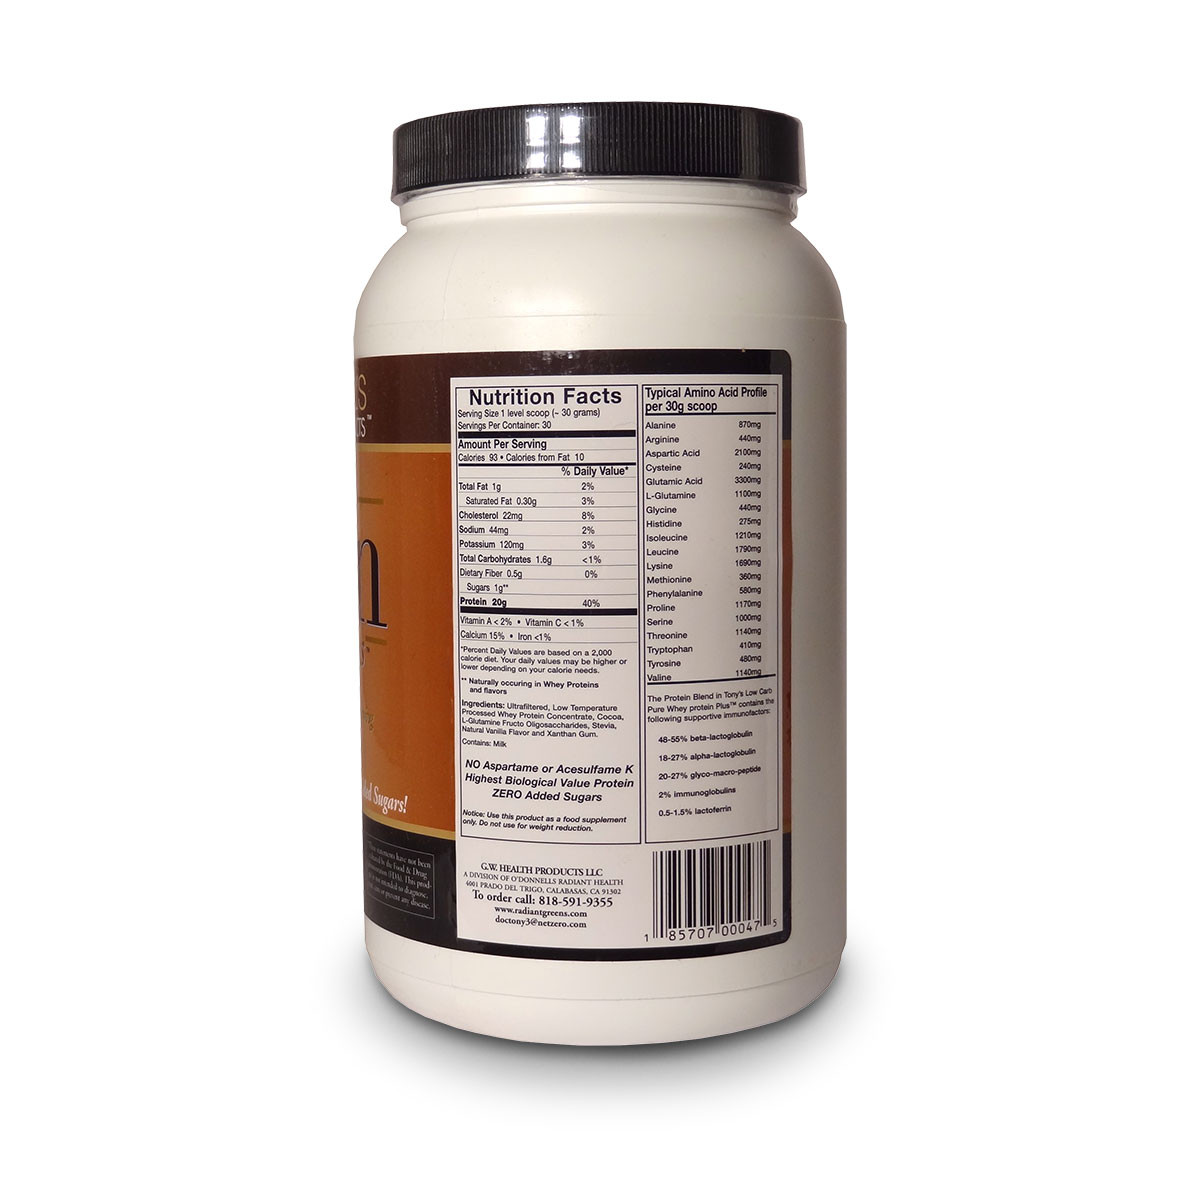 Label view including nutrition facts &  ingredients for Tony O'Donnell's Pure Whey Plus Double Dutch Chocolate Protein from G.W. Health Products.